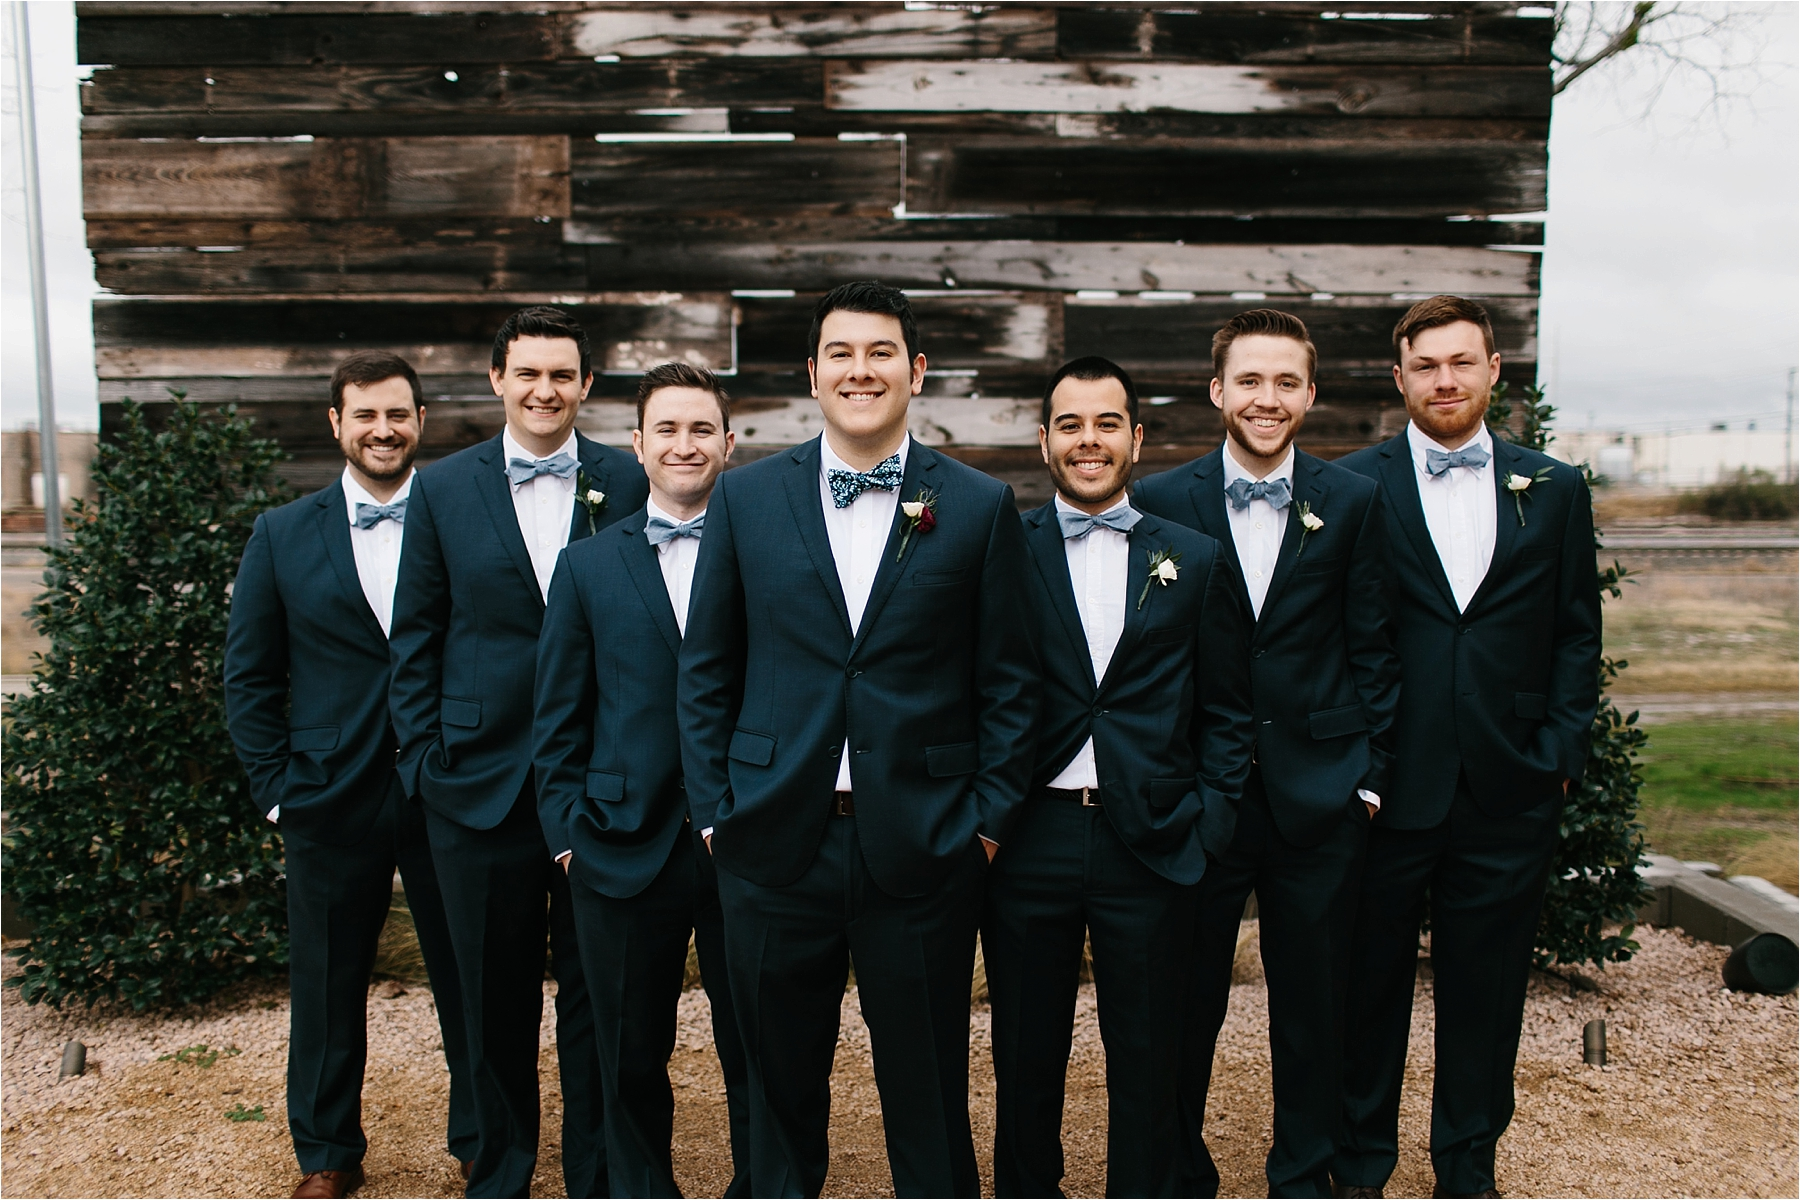 an organic, romantic, whimsical wedding at Brik Venue with Blue Grey, Burgandy, and pops of navy gold + white accents by North Texas Wedding Photographer Rachel Meagan Photography __ 237